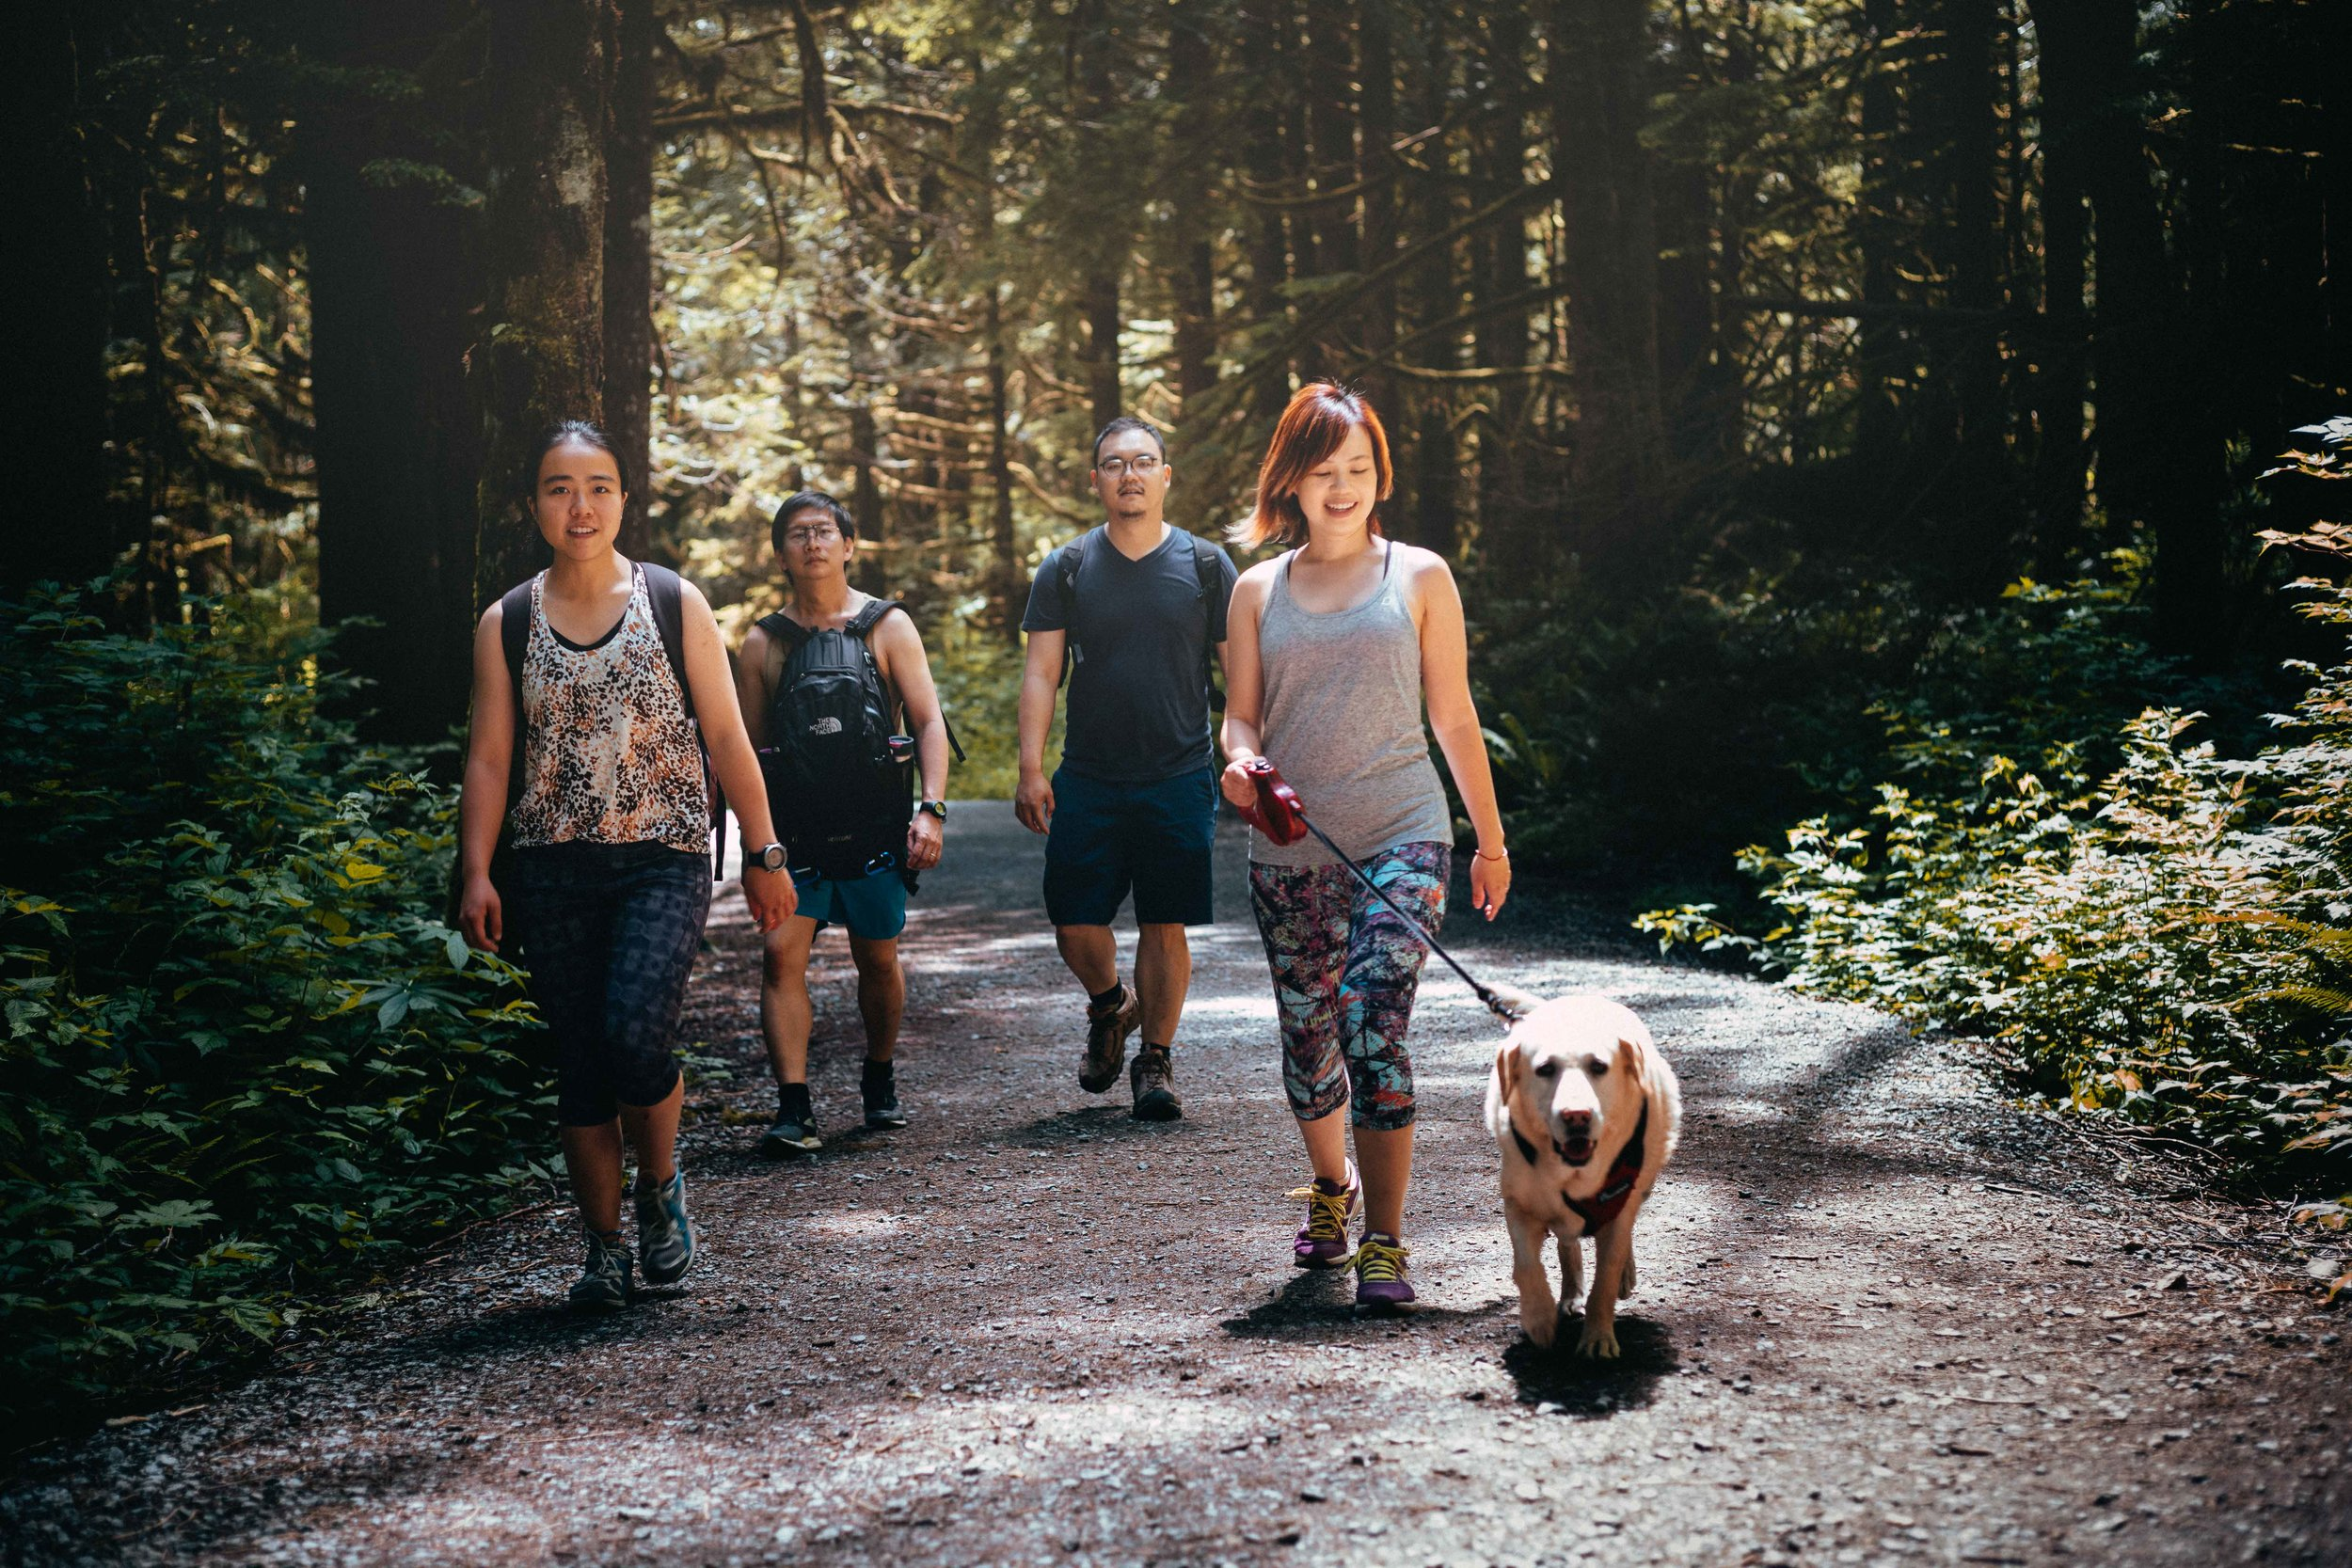 Hiking with friends (and cute doggos) is such a great way to keep active!